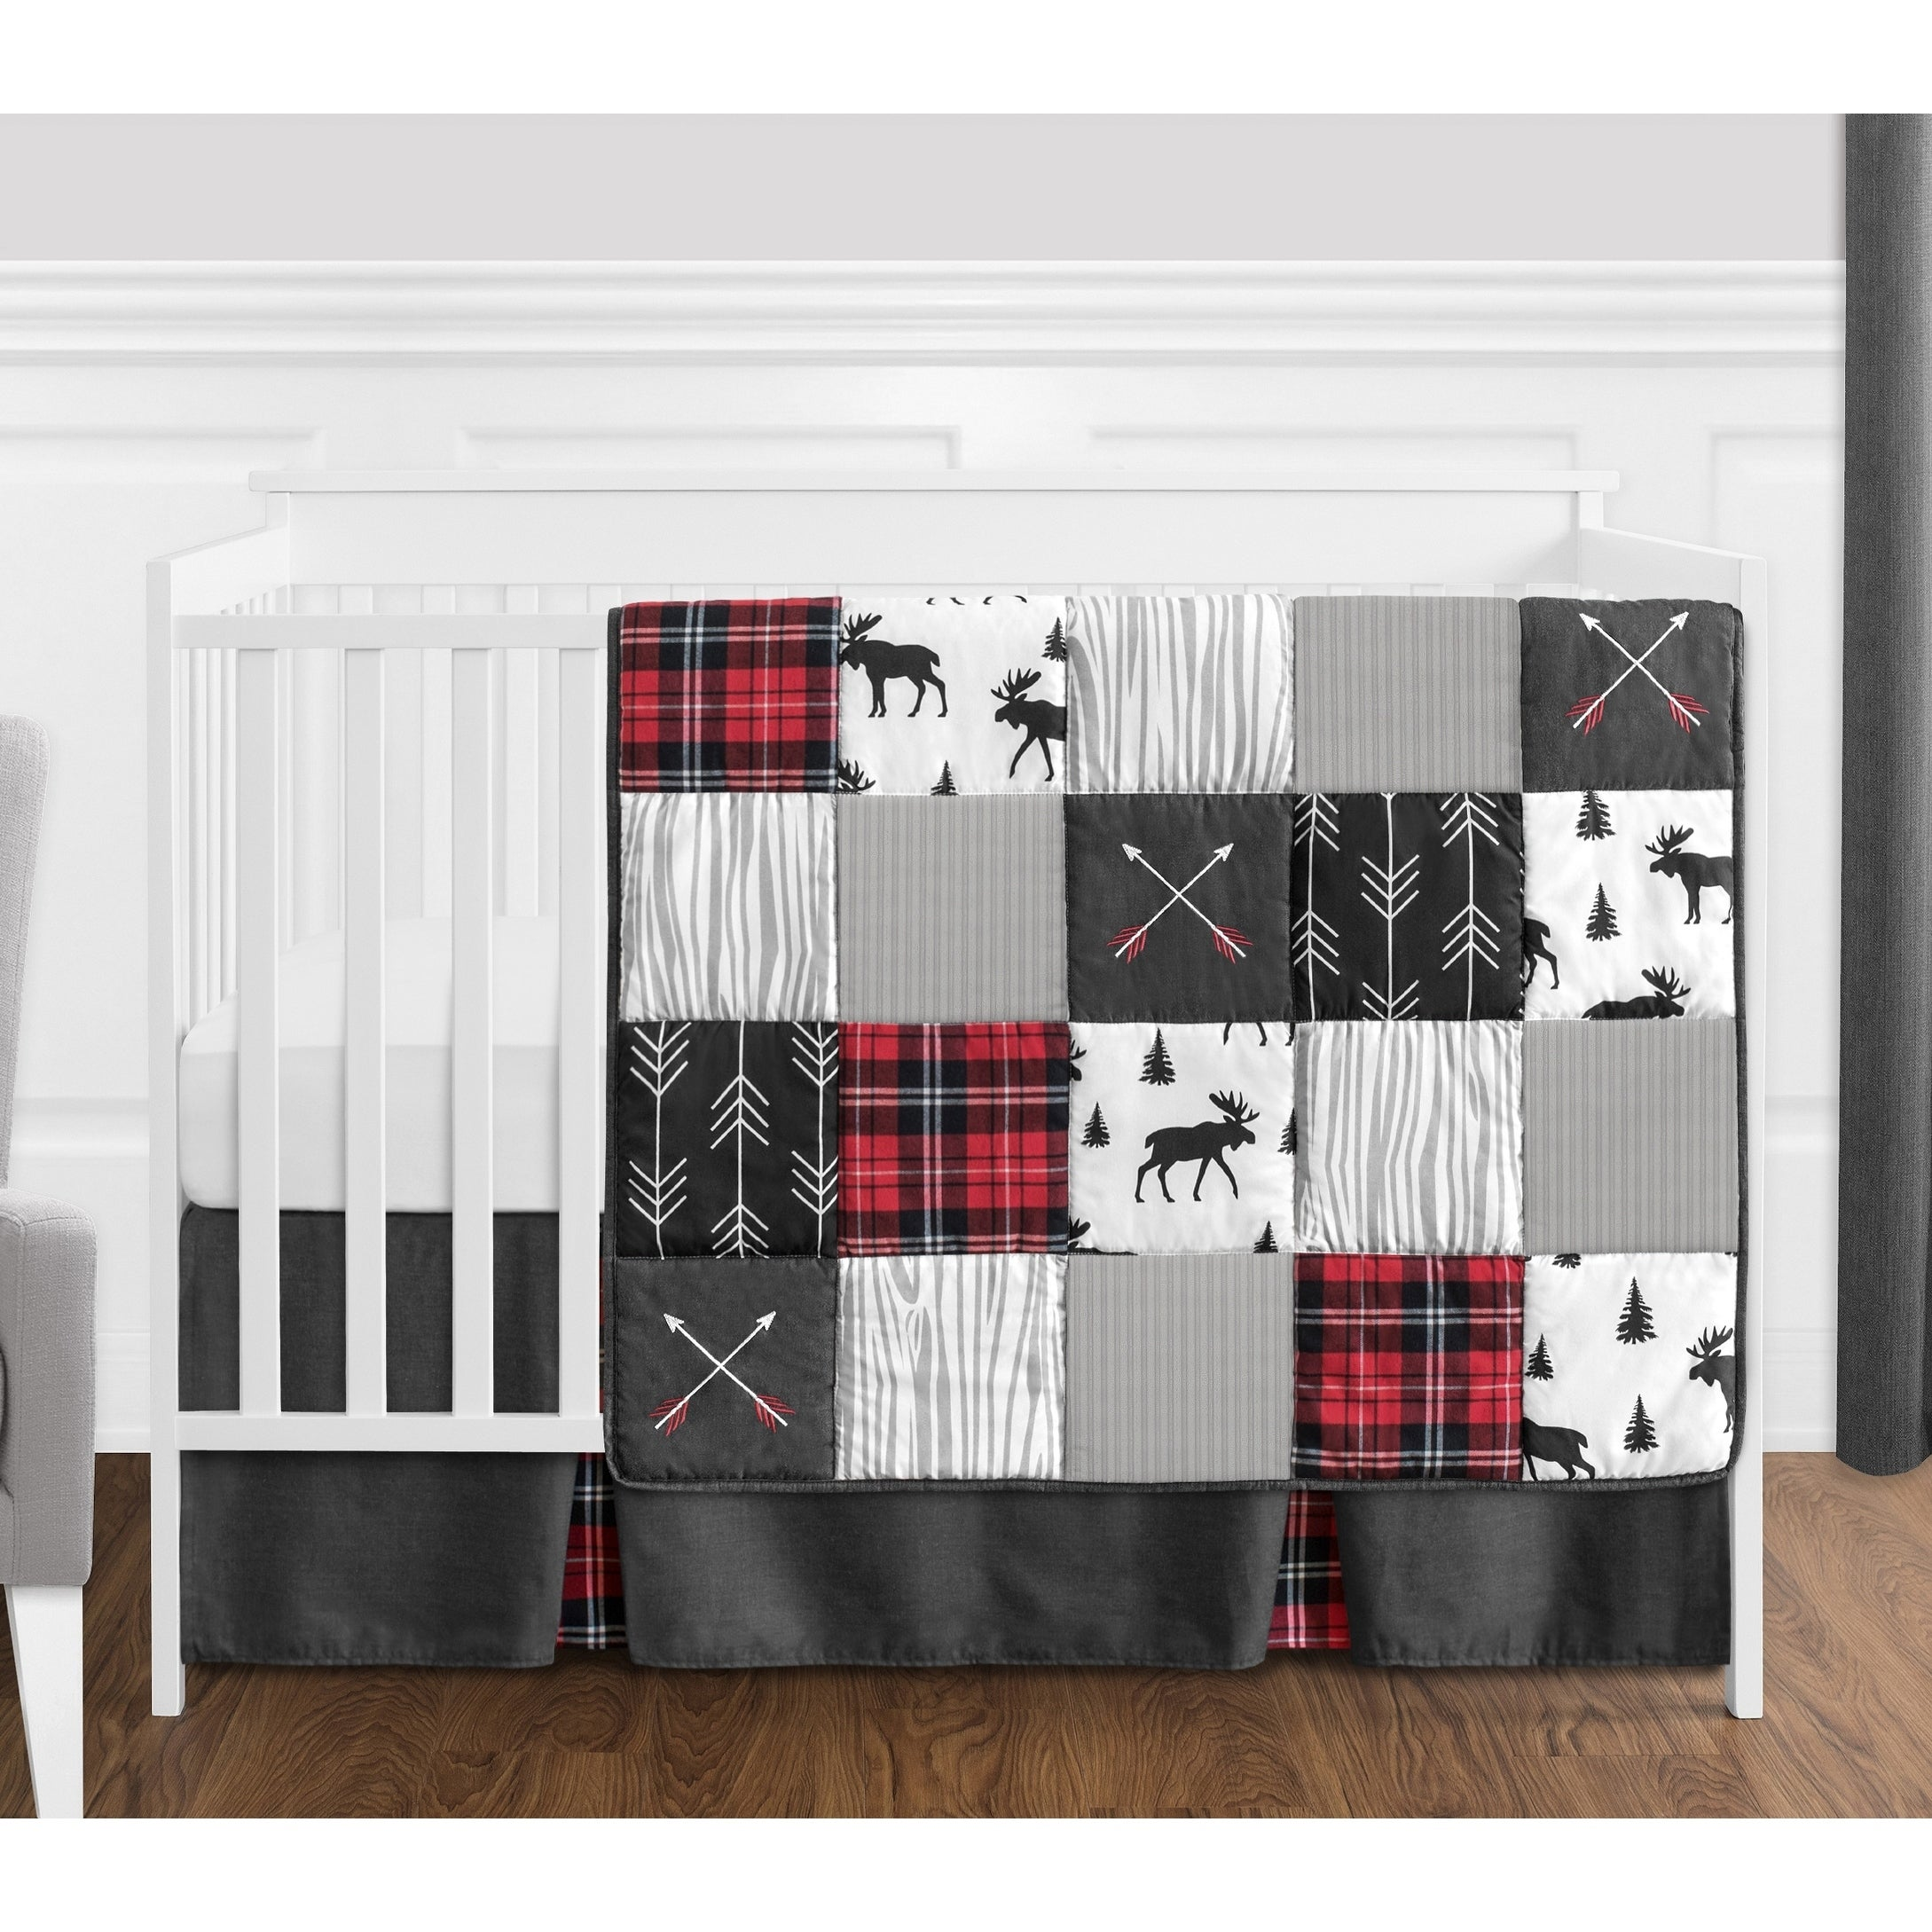 traditions image plaid for quilts of patchwork cabin vintage crib in toddler evening cribs quilt twin seasons log american bedding star set style all